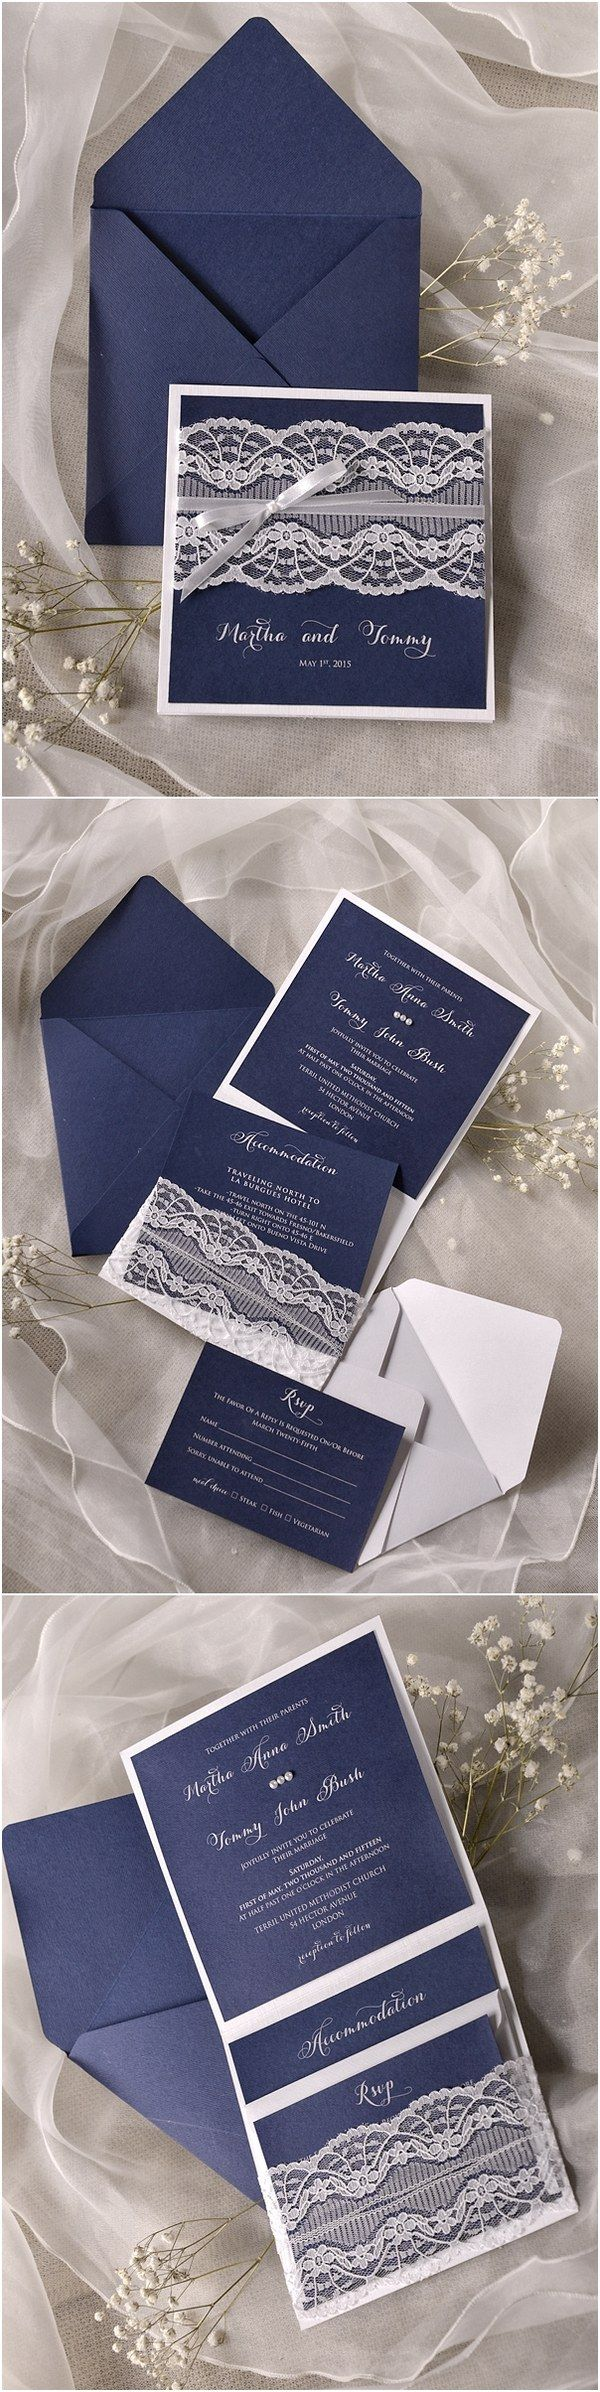 lace wedding invitation wrap%0A Angela  u    Amanda Picture it in Plum    Navy blue Lace Wedding Invitations